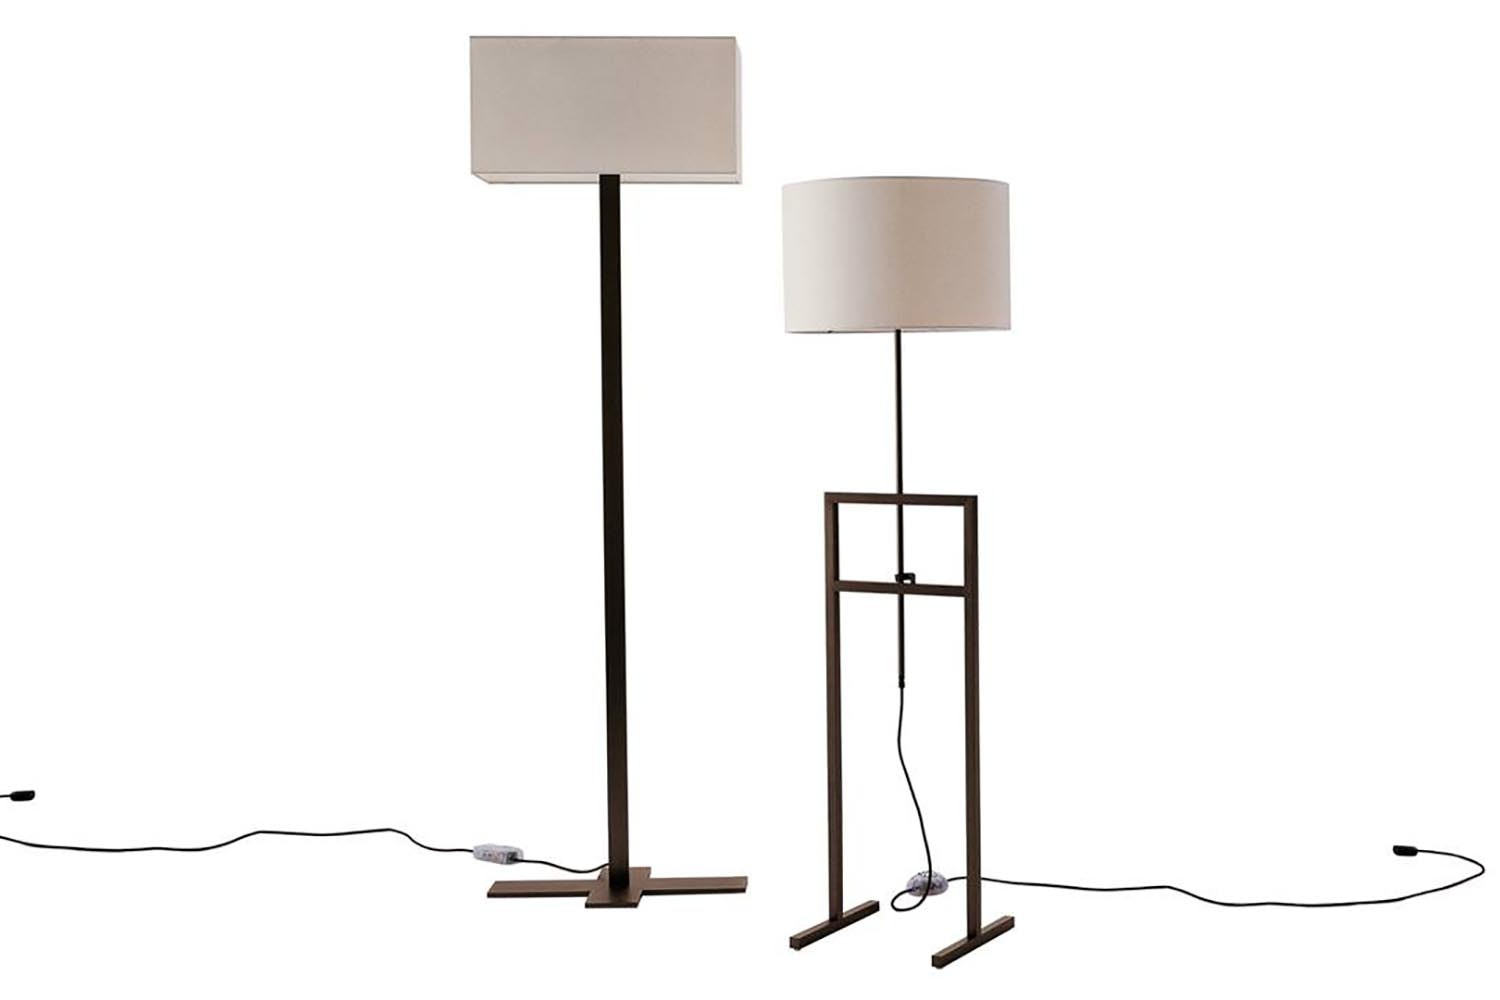 Leukon Lamps by Antonio Citterio for Maxalto